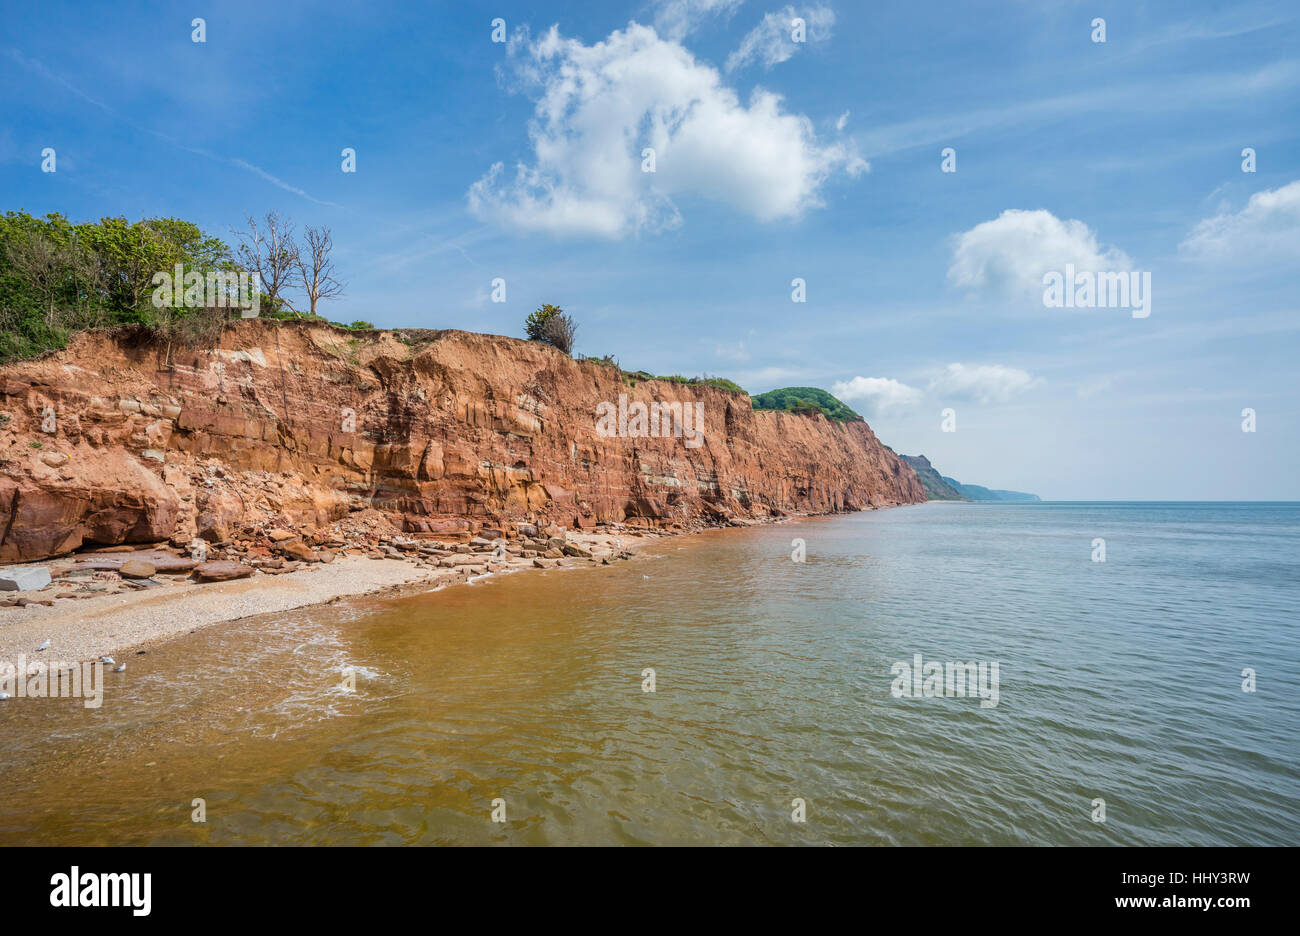 Great Britain, South West England, East Devon, Sidmouth, view of the red-coloured cliff face of Salcombe Hill - Stock Image